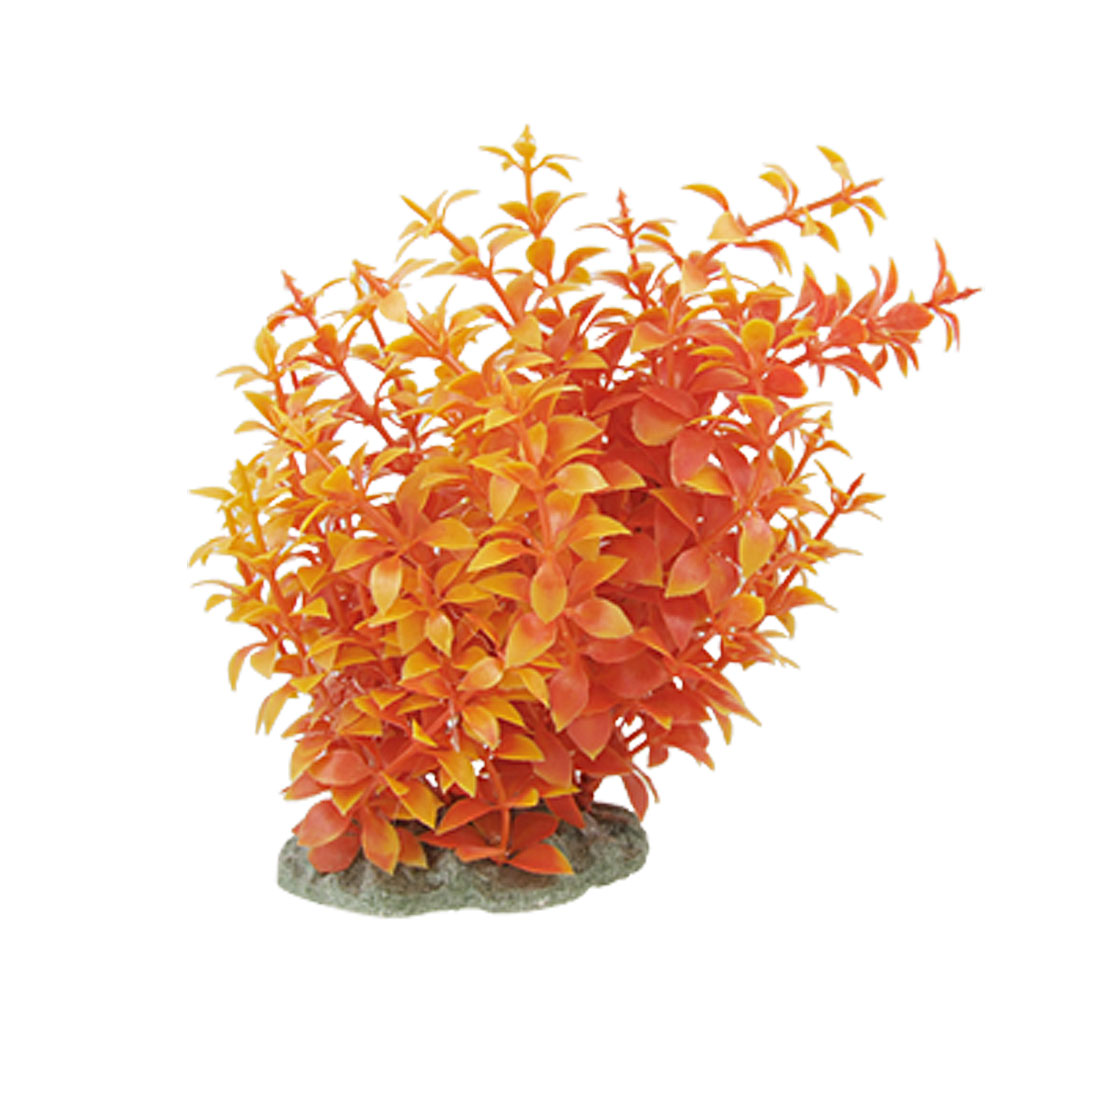 Orange Yellow Leaves Plastic Shrub Fish Tank Decoration